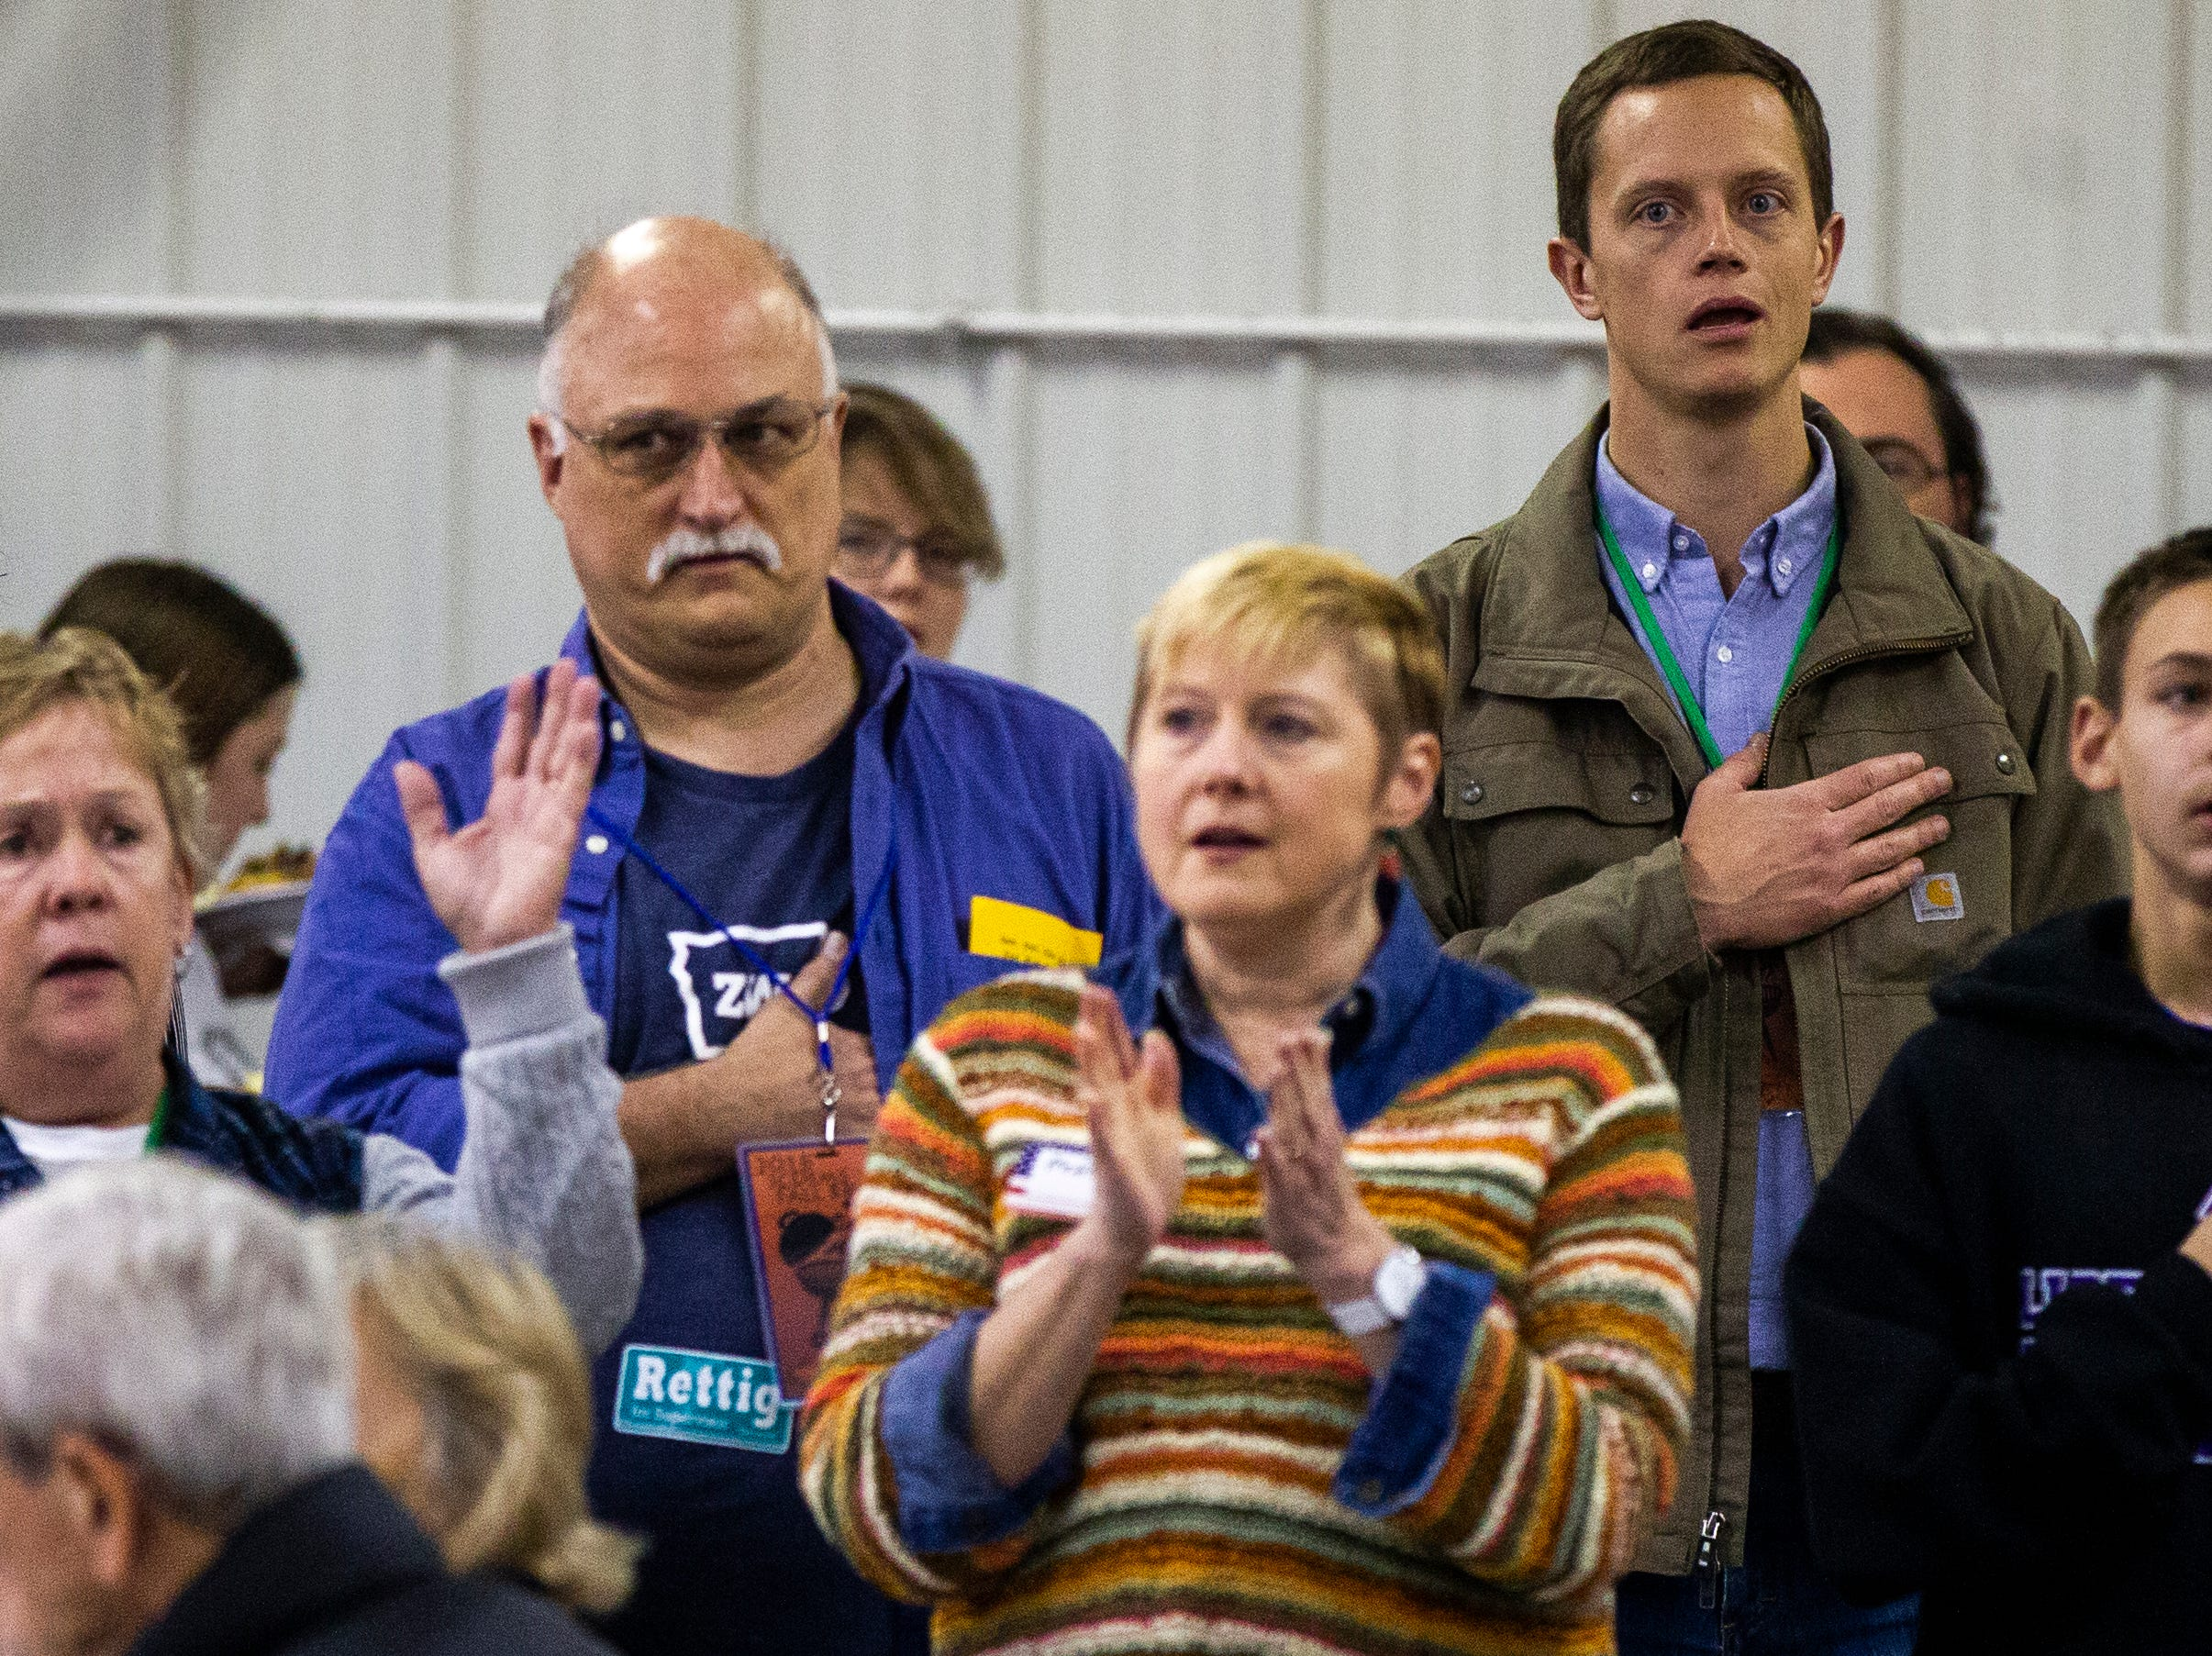 Rob Sand, Democratic candidate for Iowa State auditor, stands during the national anthem during the Johnson County Democrats annual barbecue fundraiser on Sunday, Oct. 14, 2018, inside Building C at the Johnson County Fairgrounds in Iowa City.